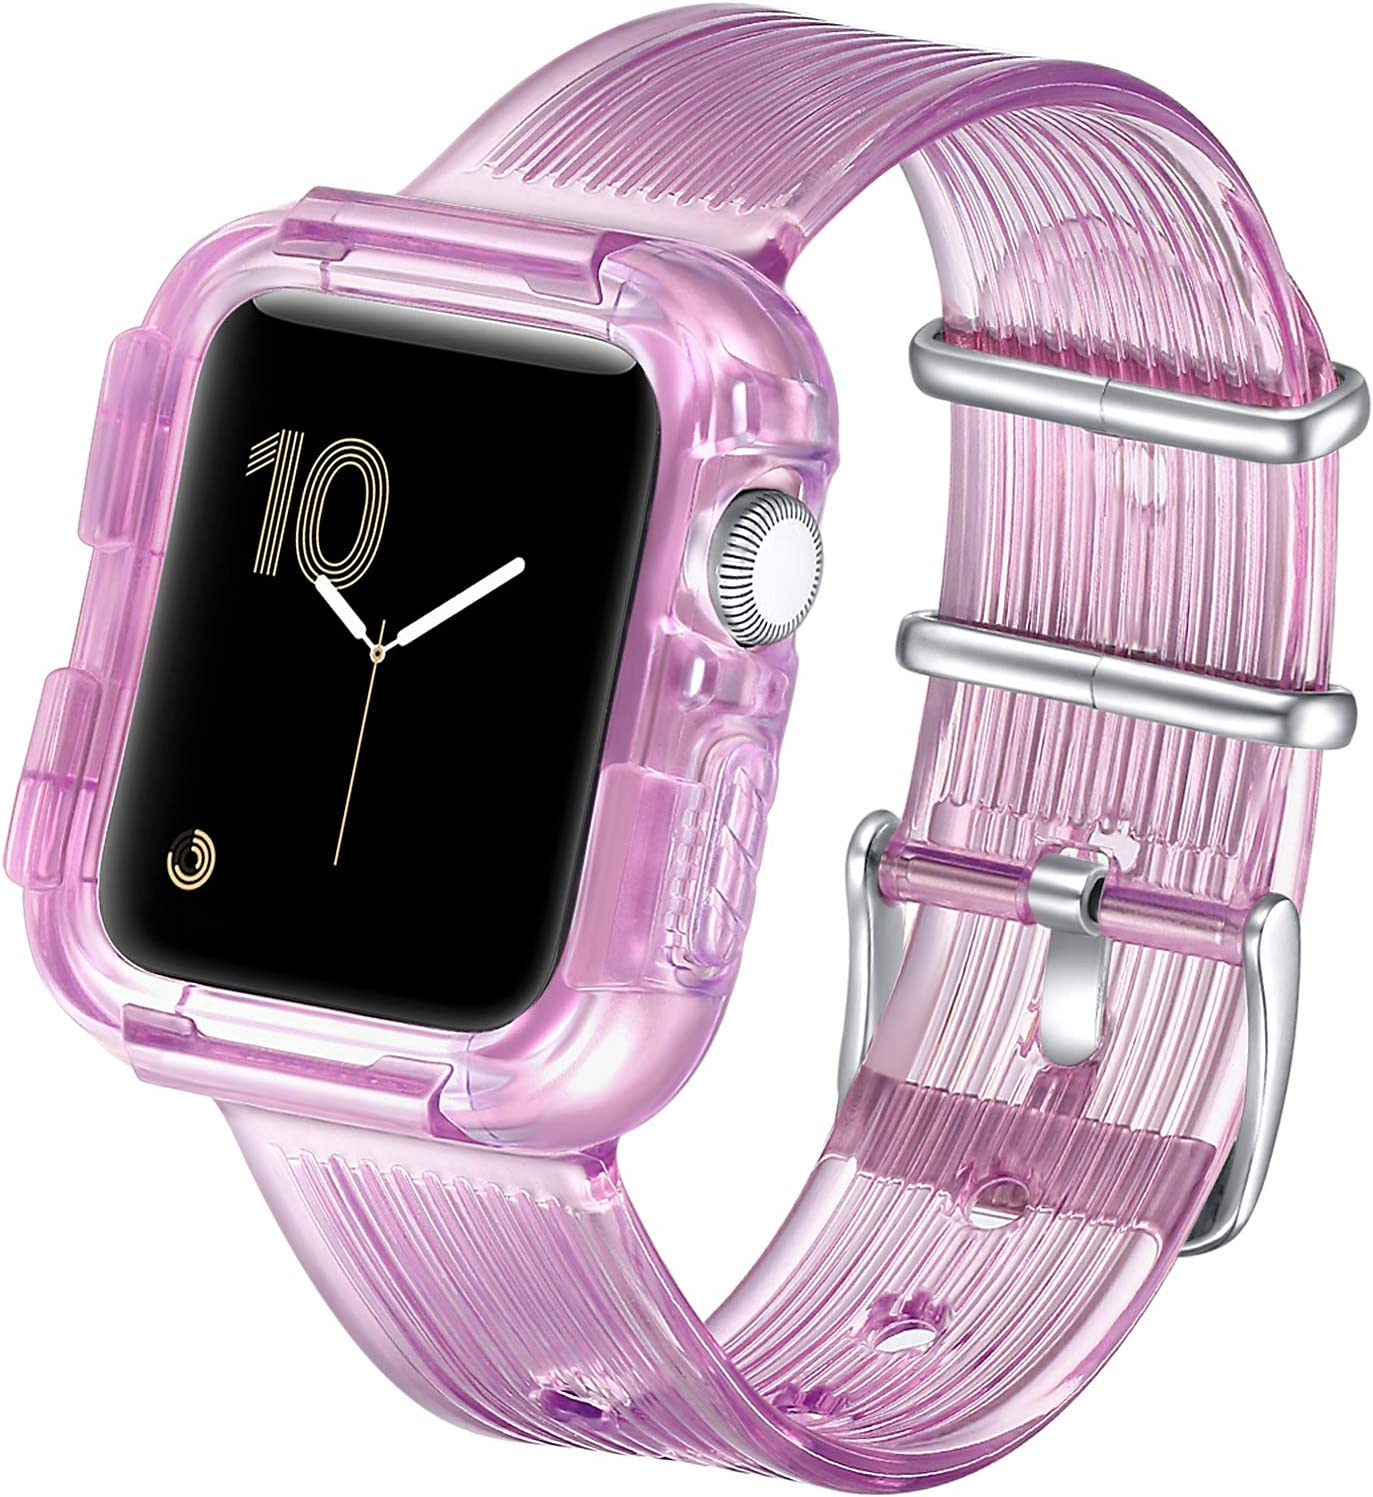 fastgo Compatible with Apple Watch Bands with Bumper Case 38mm/40mm/42mm/44mm, Women Men Clear Sports TPU Smart Watch Strap Band Wristband IWatch SE Series 6/5/4/3/2/1 (Crystal Purple, 42mm/44mm)